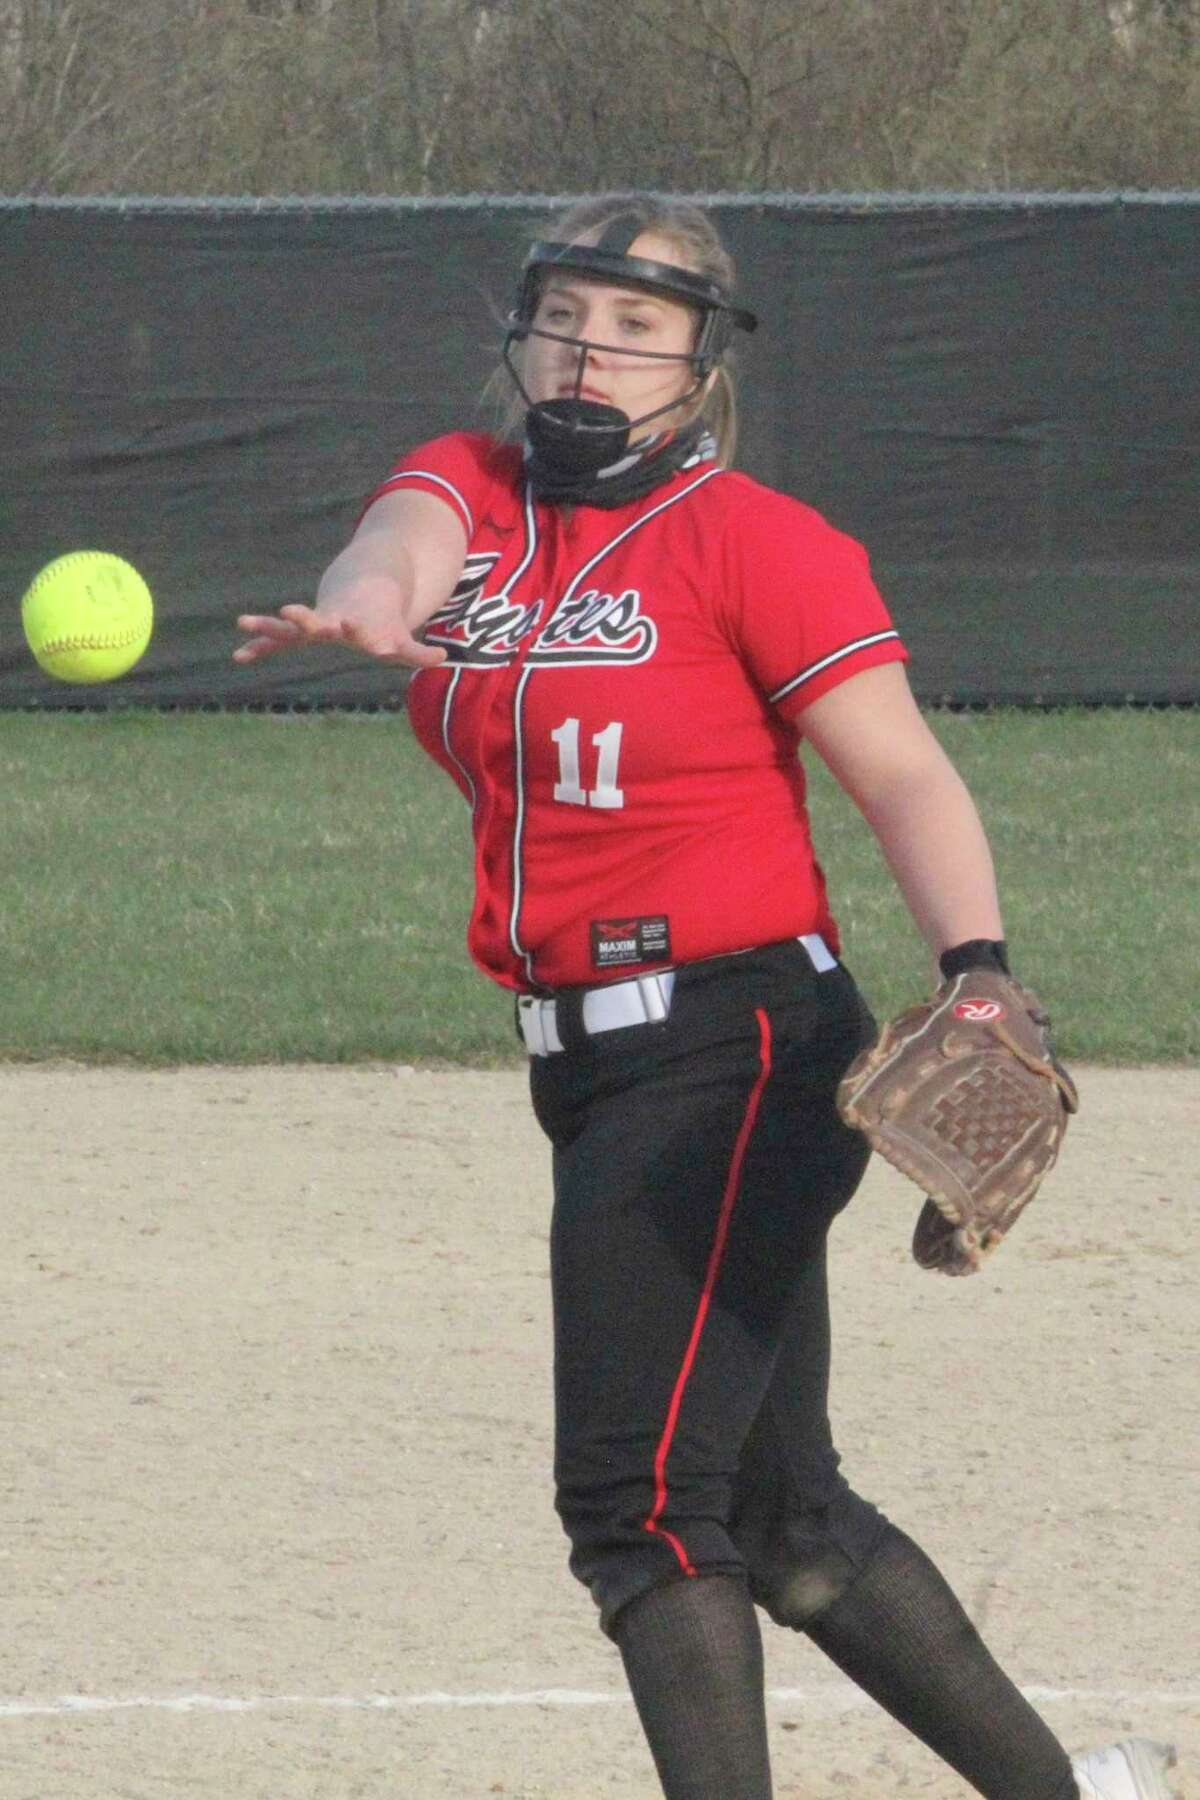 Rylie Schafer was among the key players for Reed City's softball team this season. (Herald Review file photo)